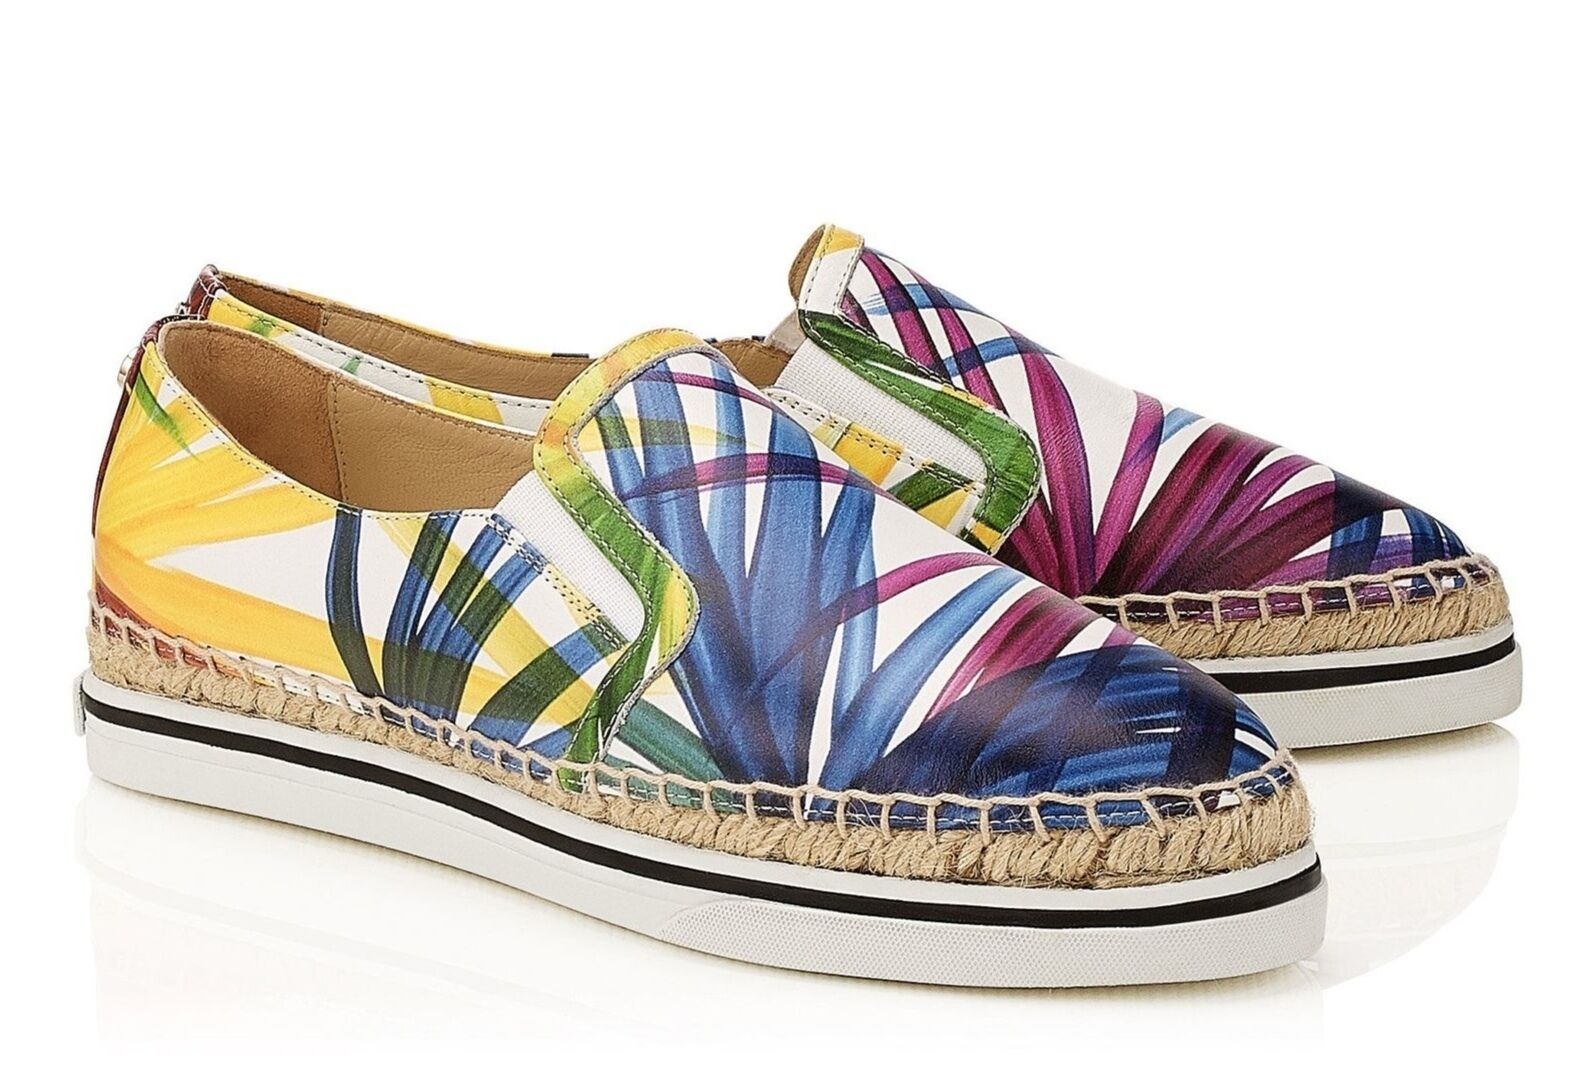 Jimmy Choo DAWN Printed Nappa Leather Espadrilles 8387 Size 37  475